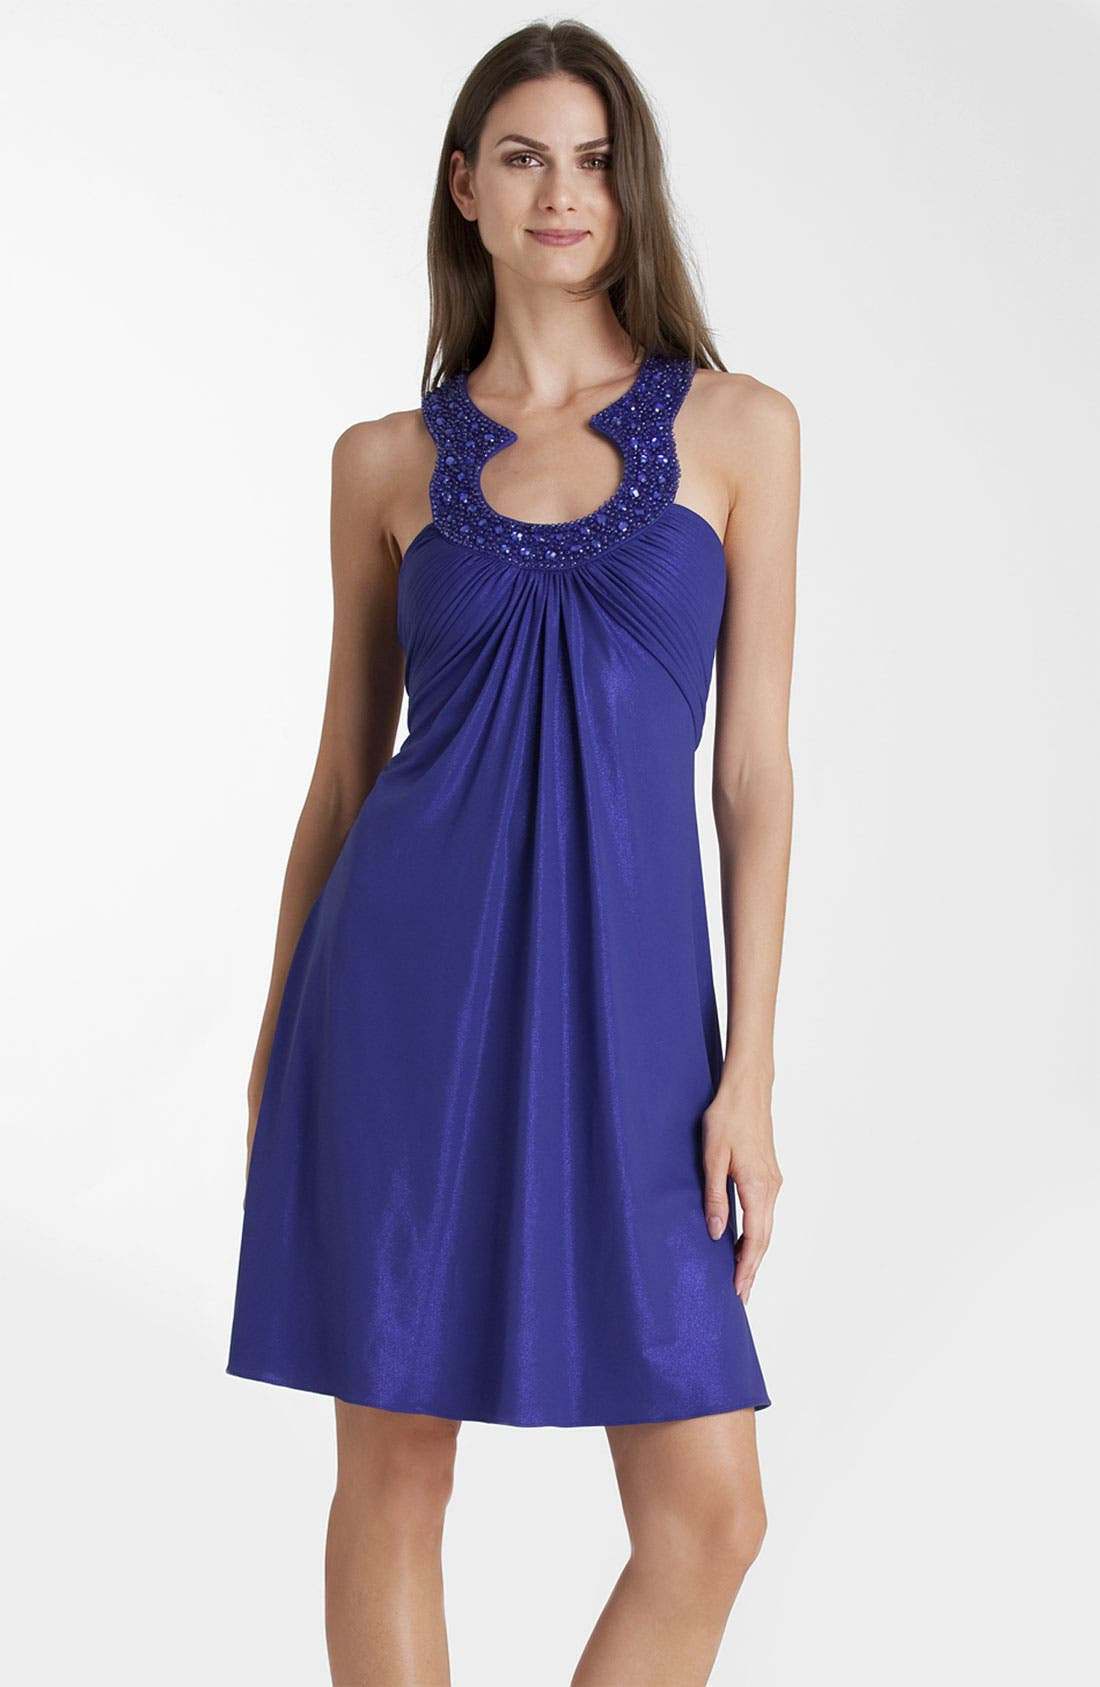 Alternate Image 1 Selected - JS Boutique Beaded Collar Shift Dress (Petite)